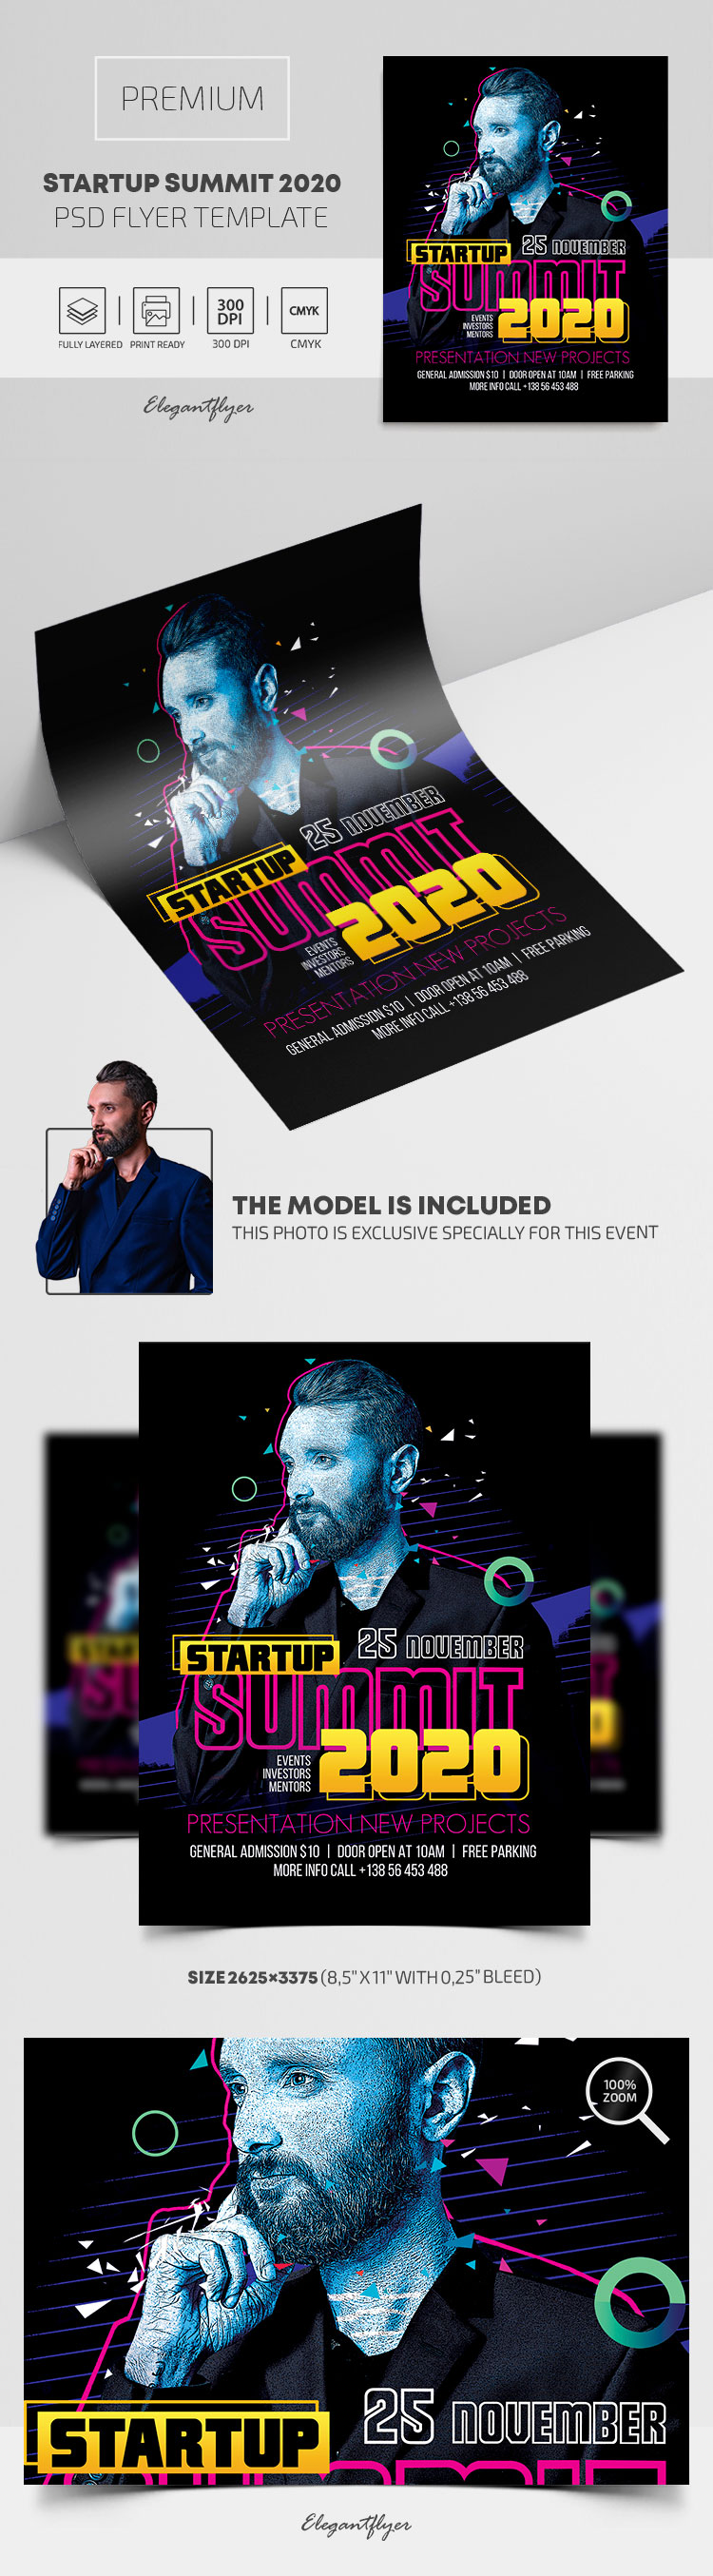 Startup summit 2020. Events, Investors, Mentors – Premium PSD Flyer Template